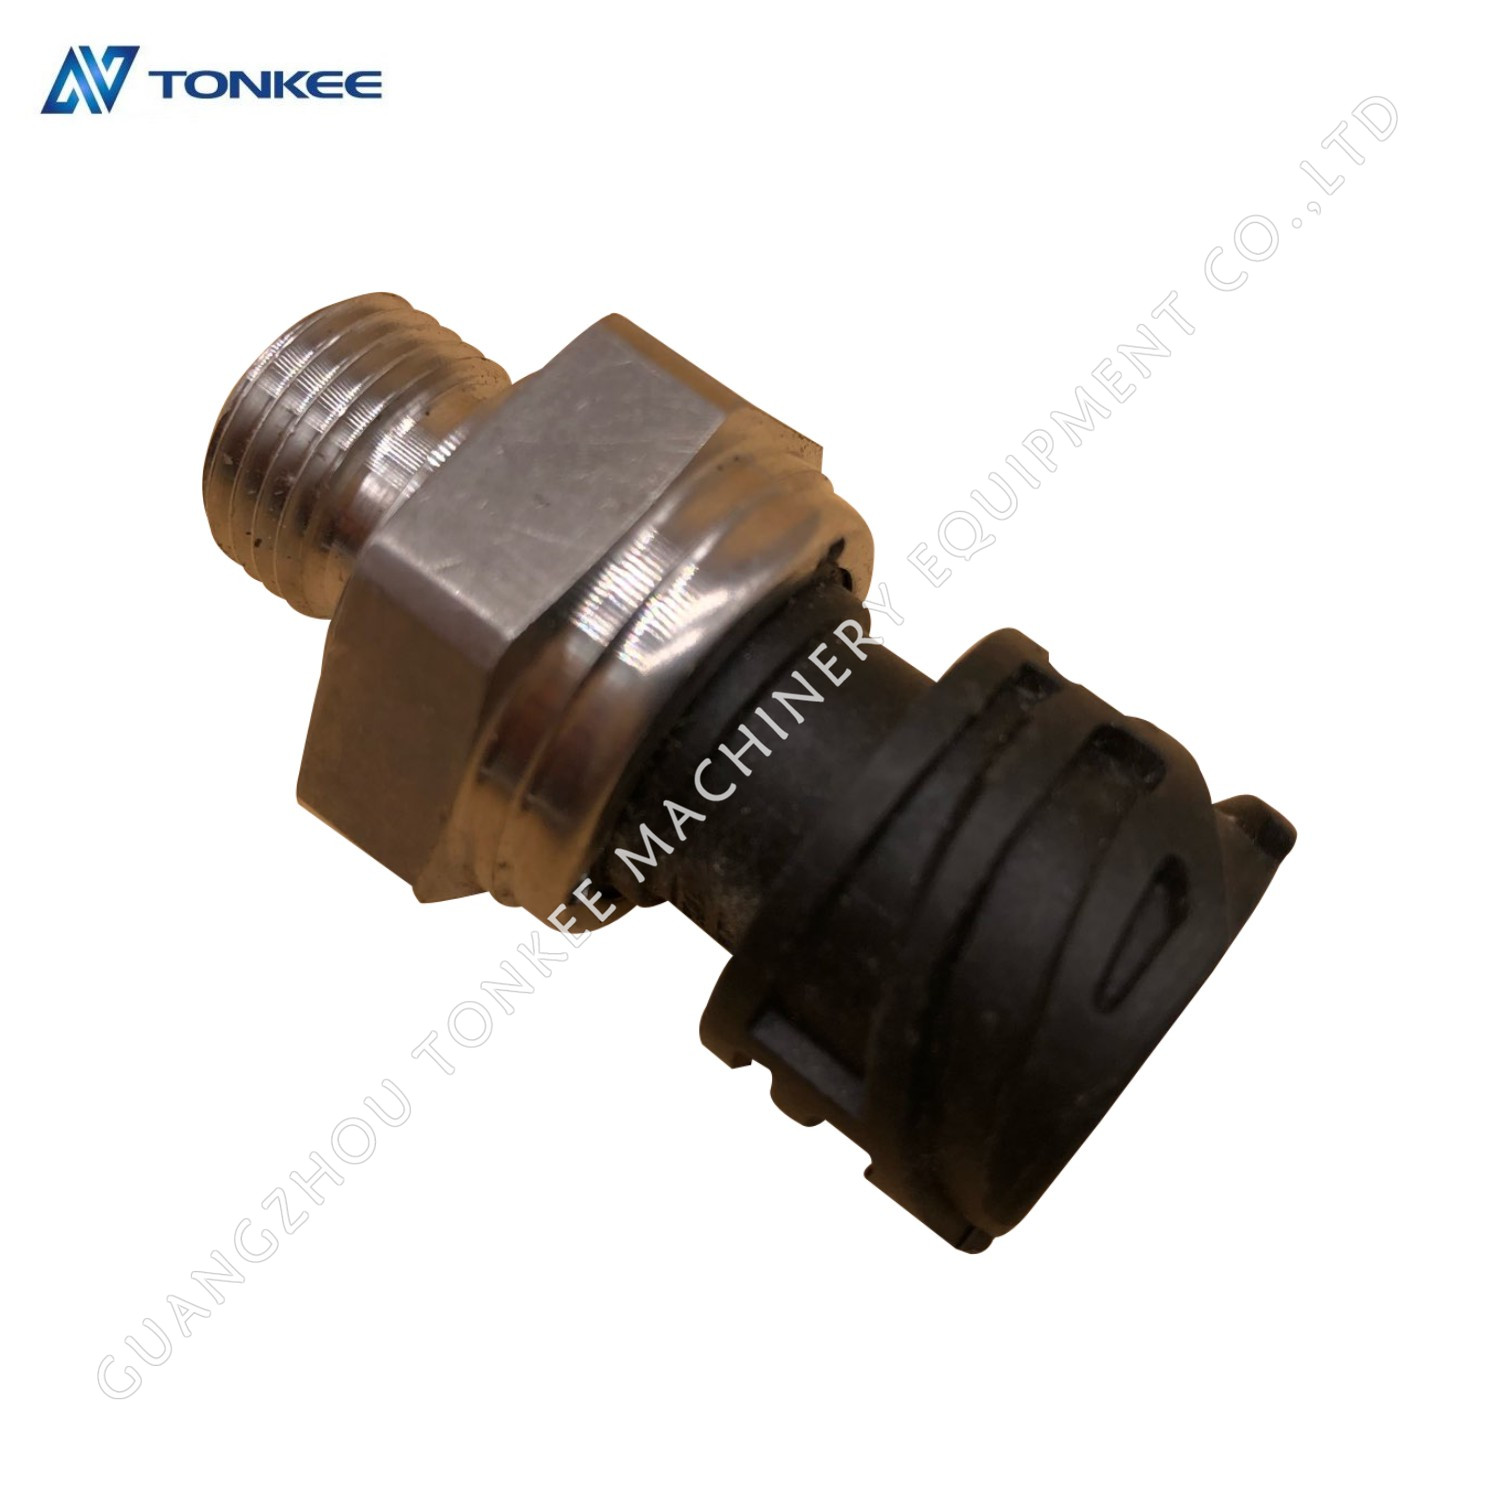 NEW 21634024 VOE21634024 Sender Unit oil pressure sensor FH12 FM12 FH16 oil pressure sensor for VOLVO truck